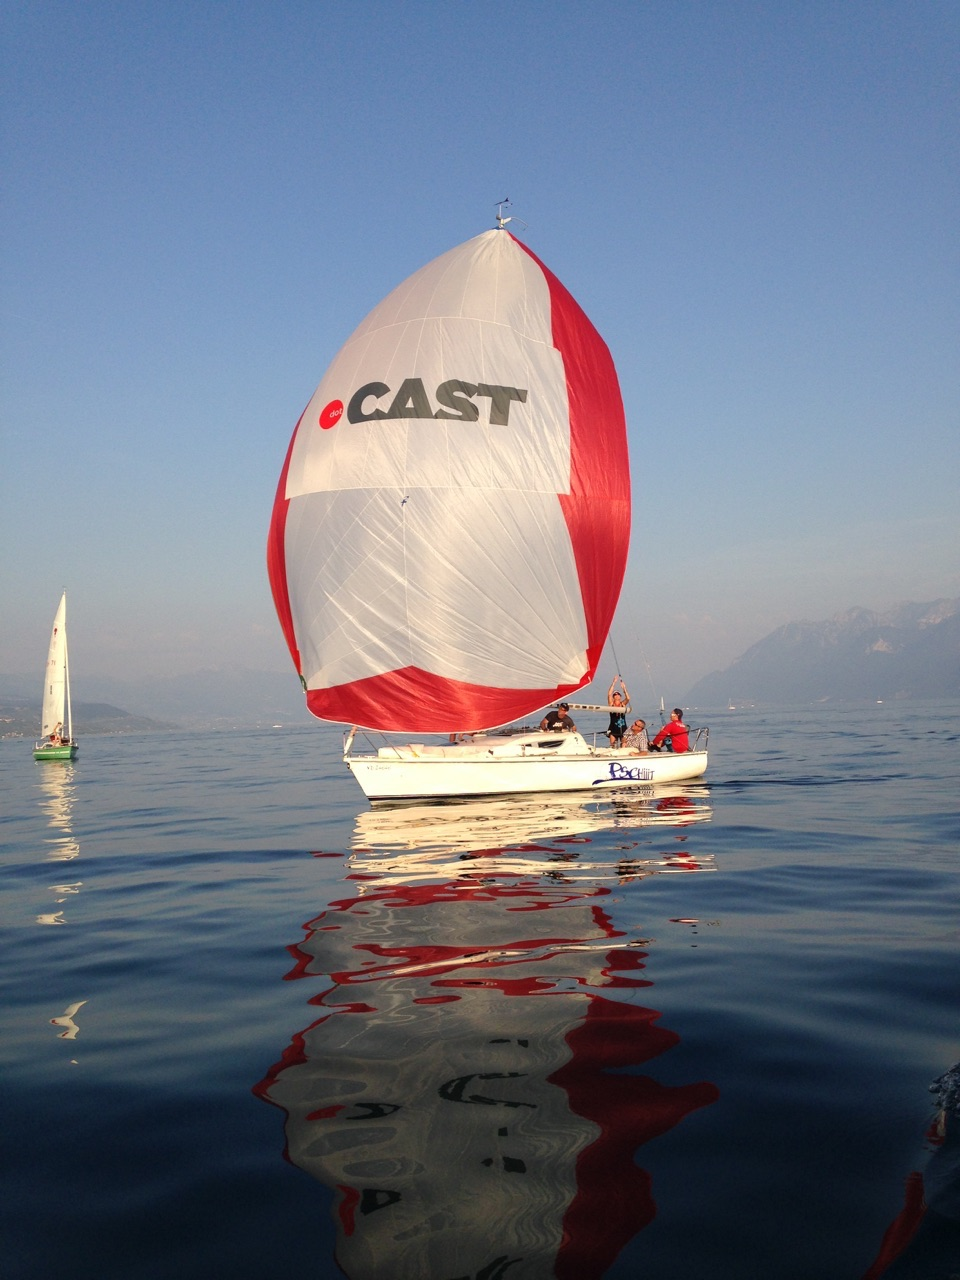 dotCAST goes sailing